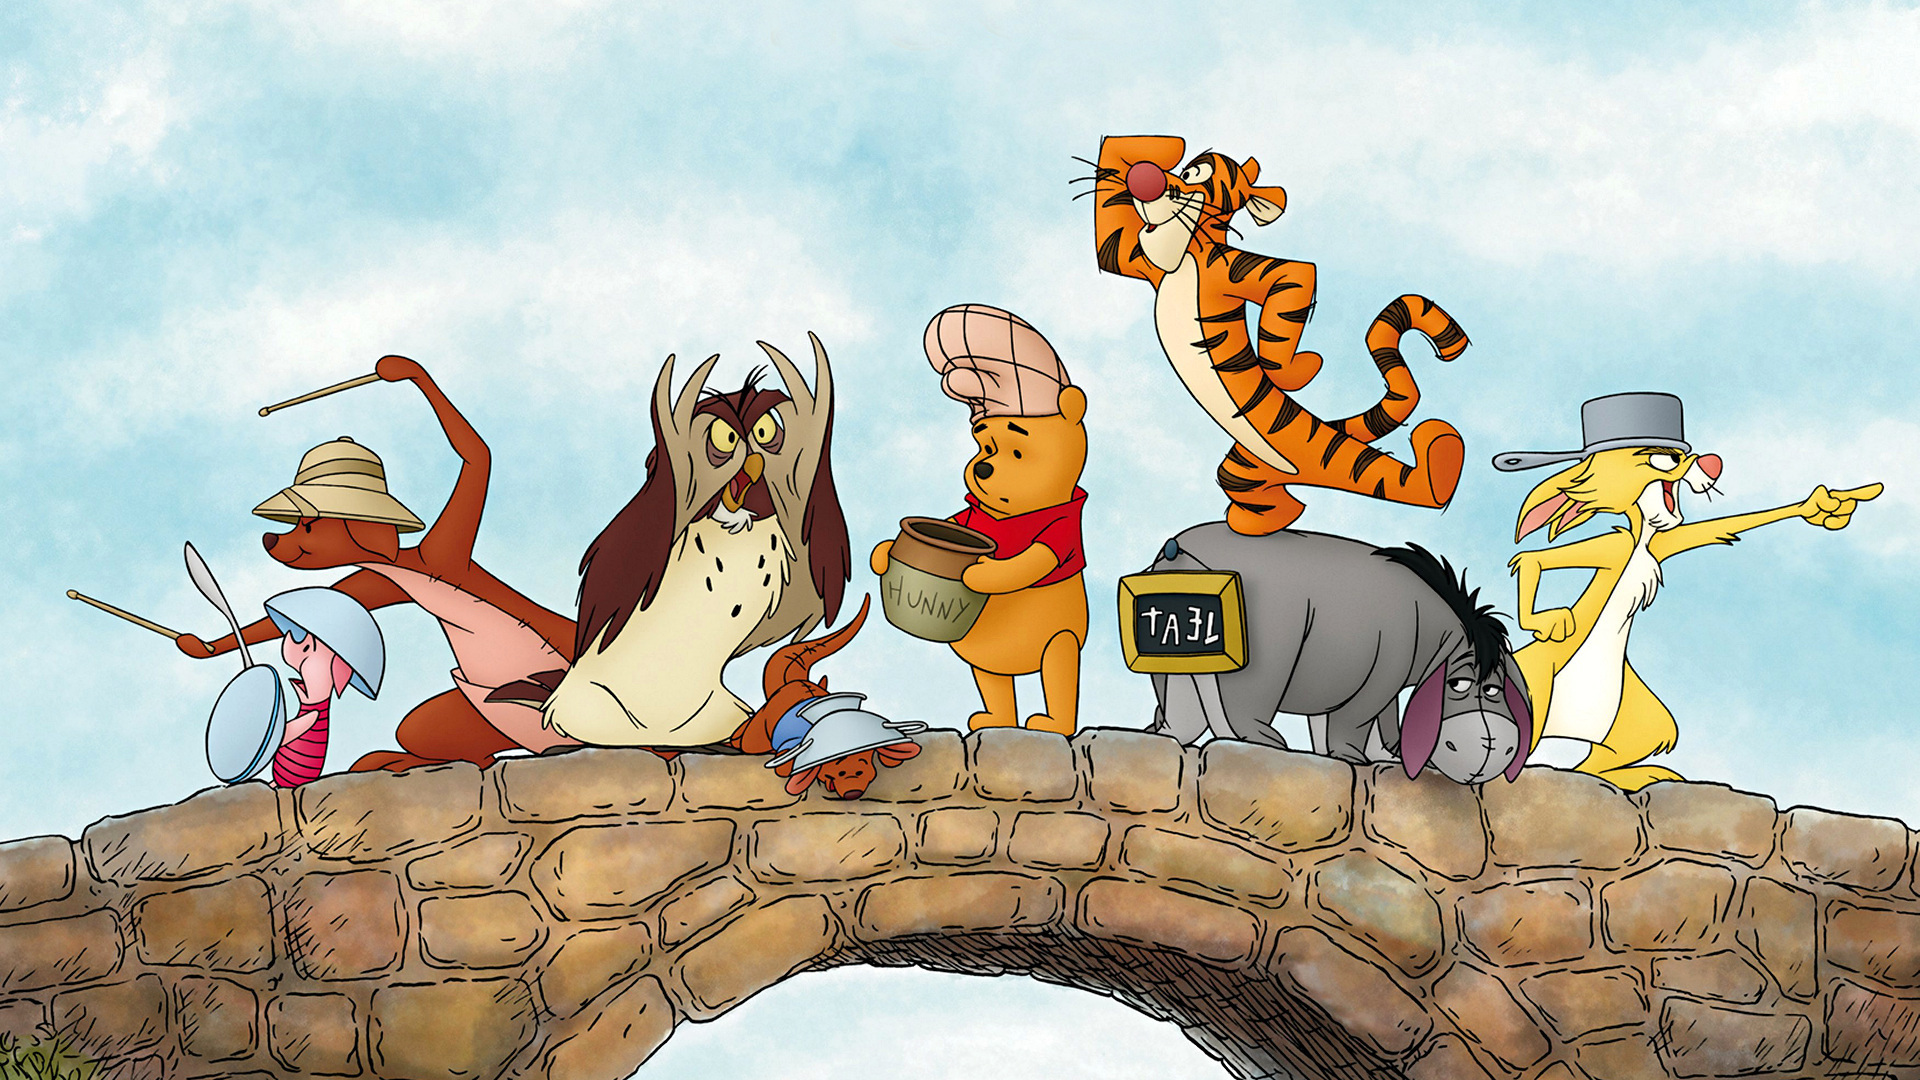 18 Hd Winnie The Pooh Wallpapers